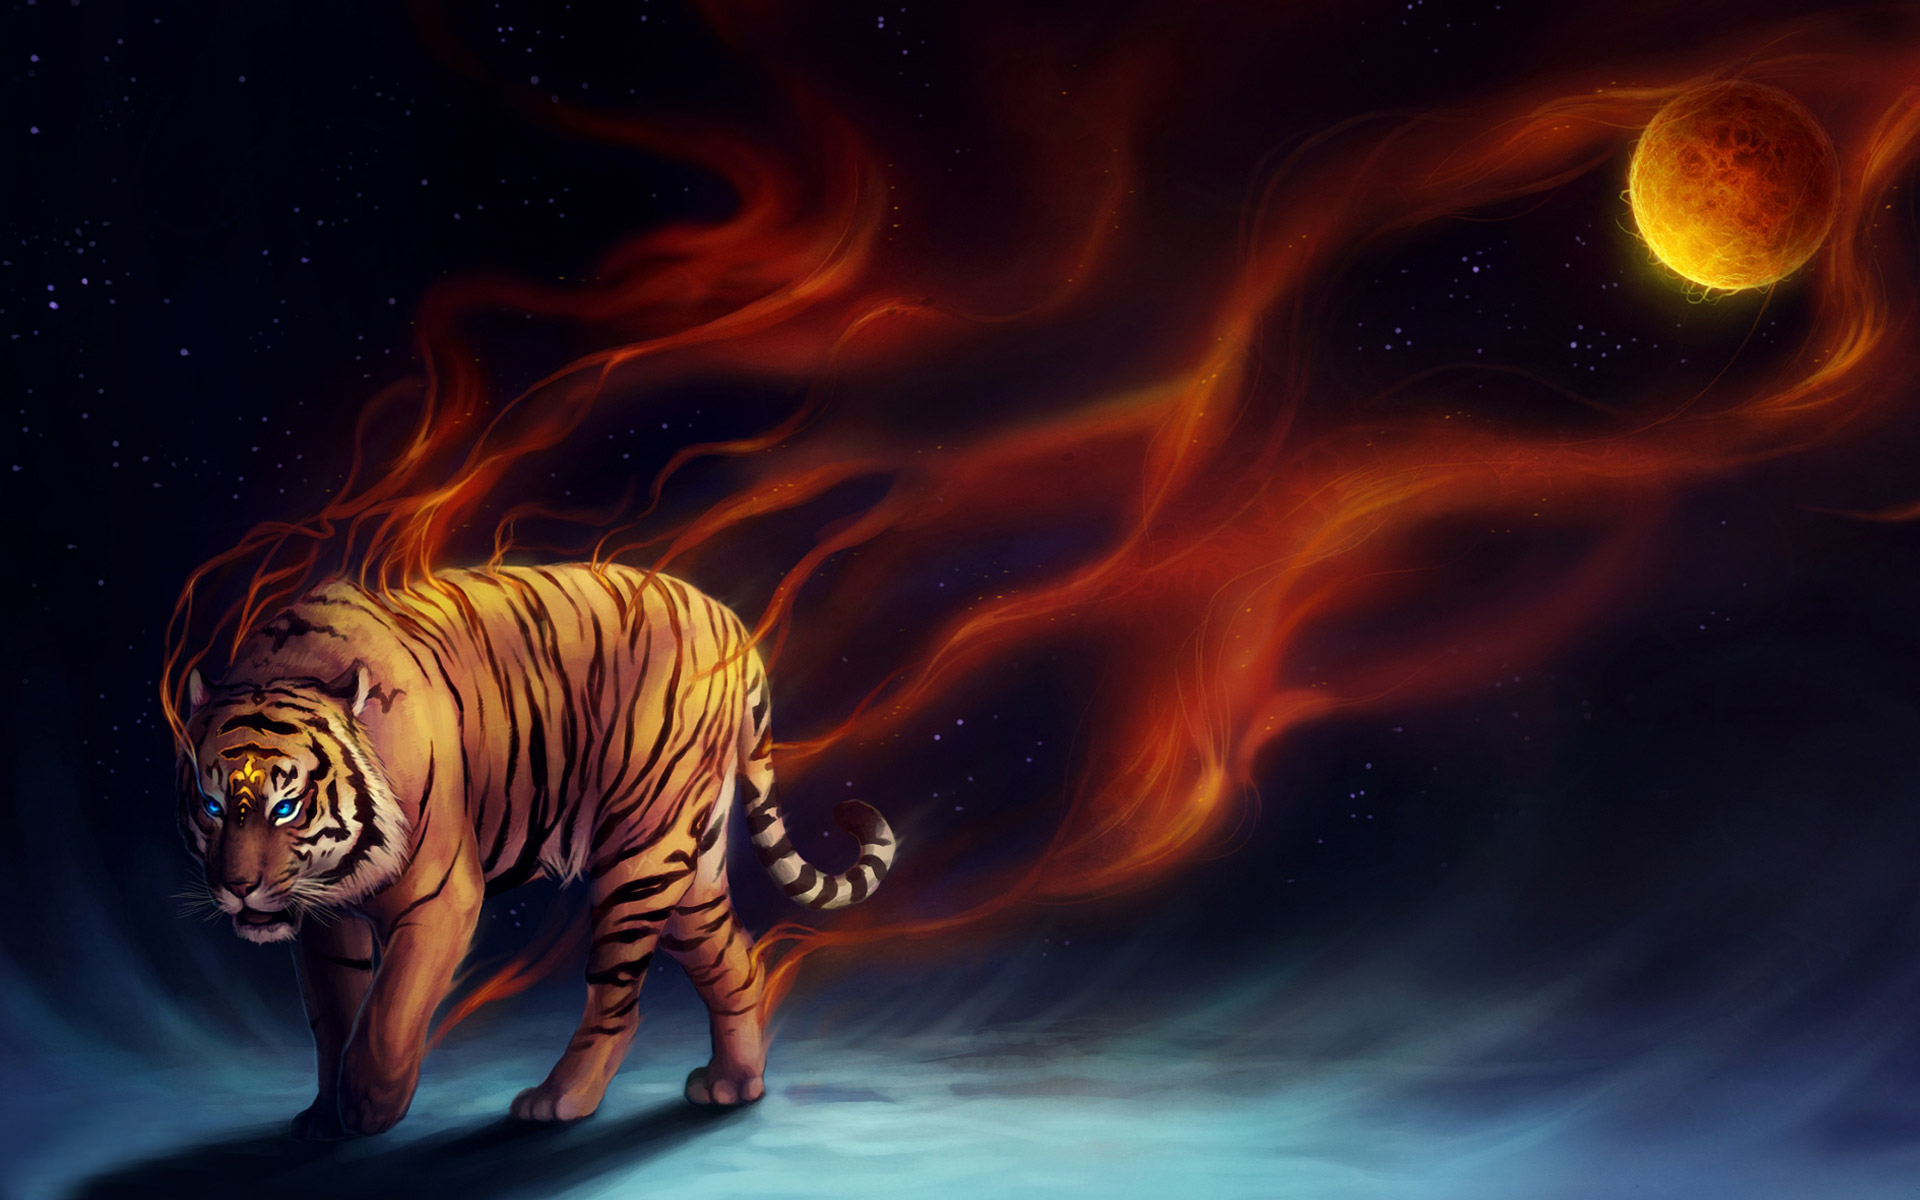 Tiger Hd Wallpapers Backgrounds Wallpaper 1920x1200